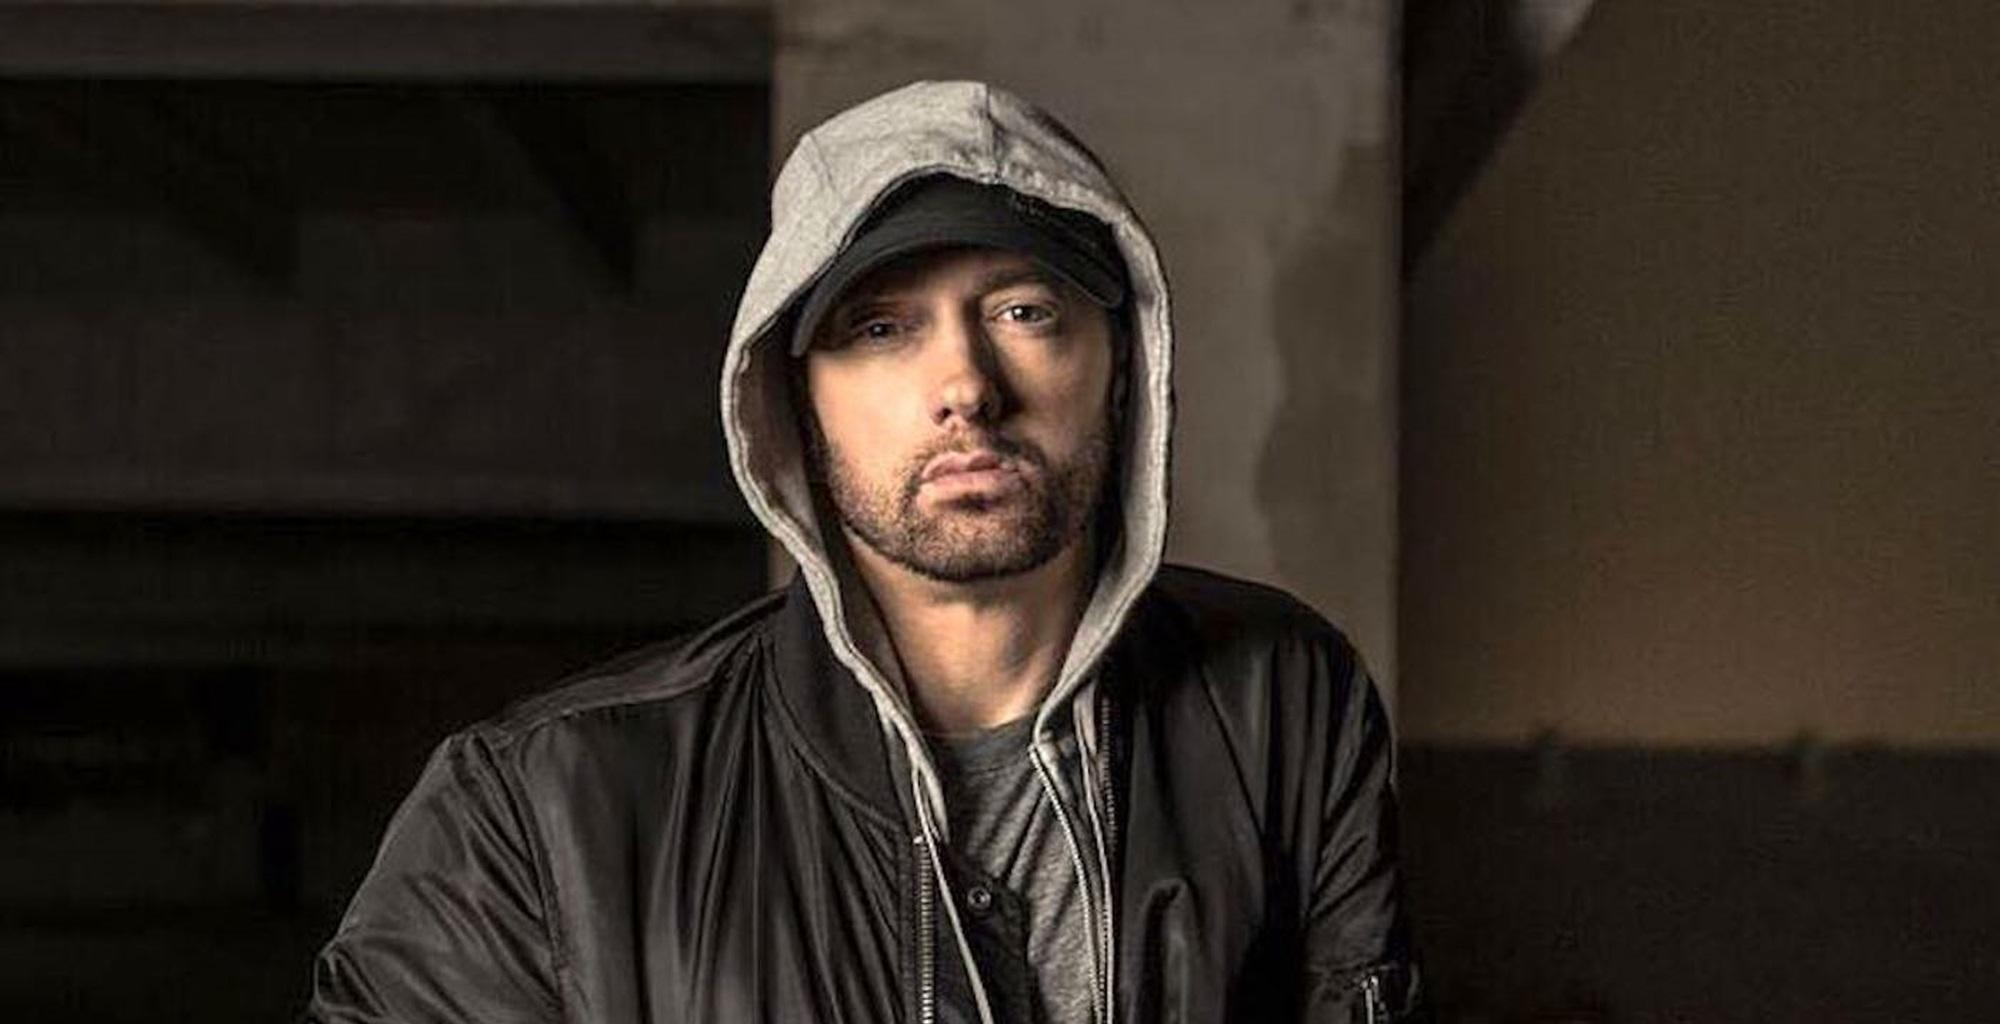 Eminem Is Called Out For These Hurtful Lyrics By This Rapper -- Will 50 Cent's Pal Make Amends?